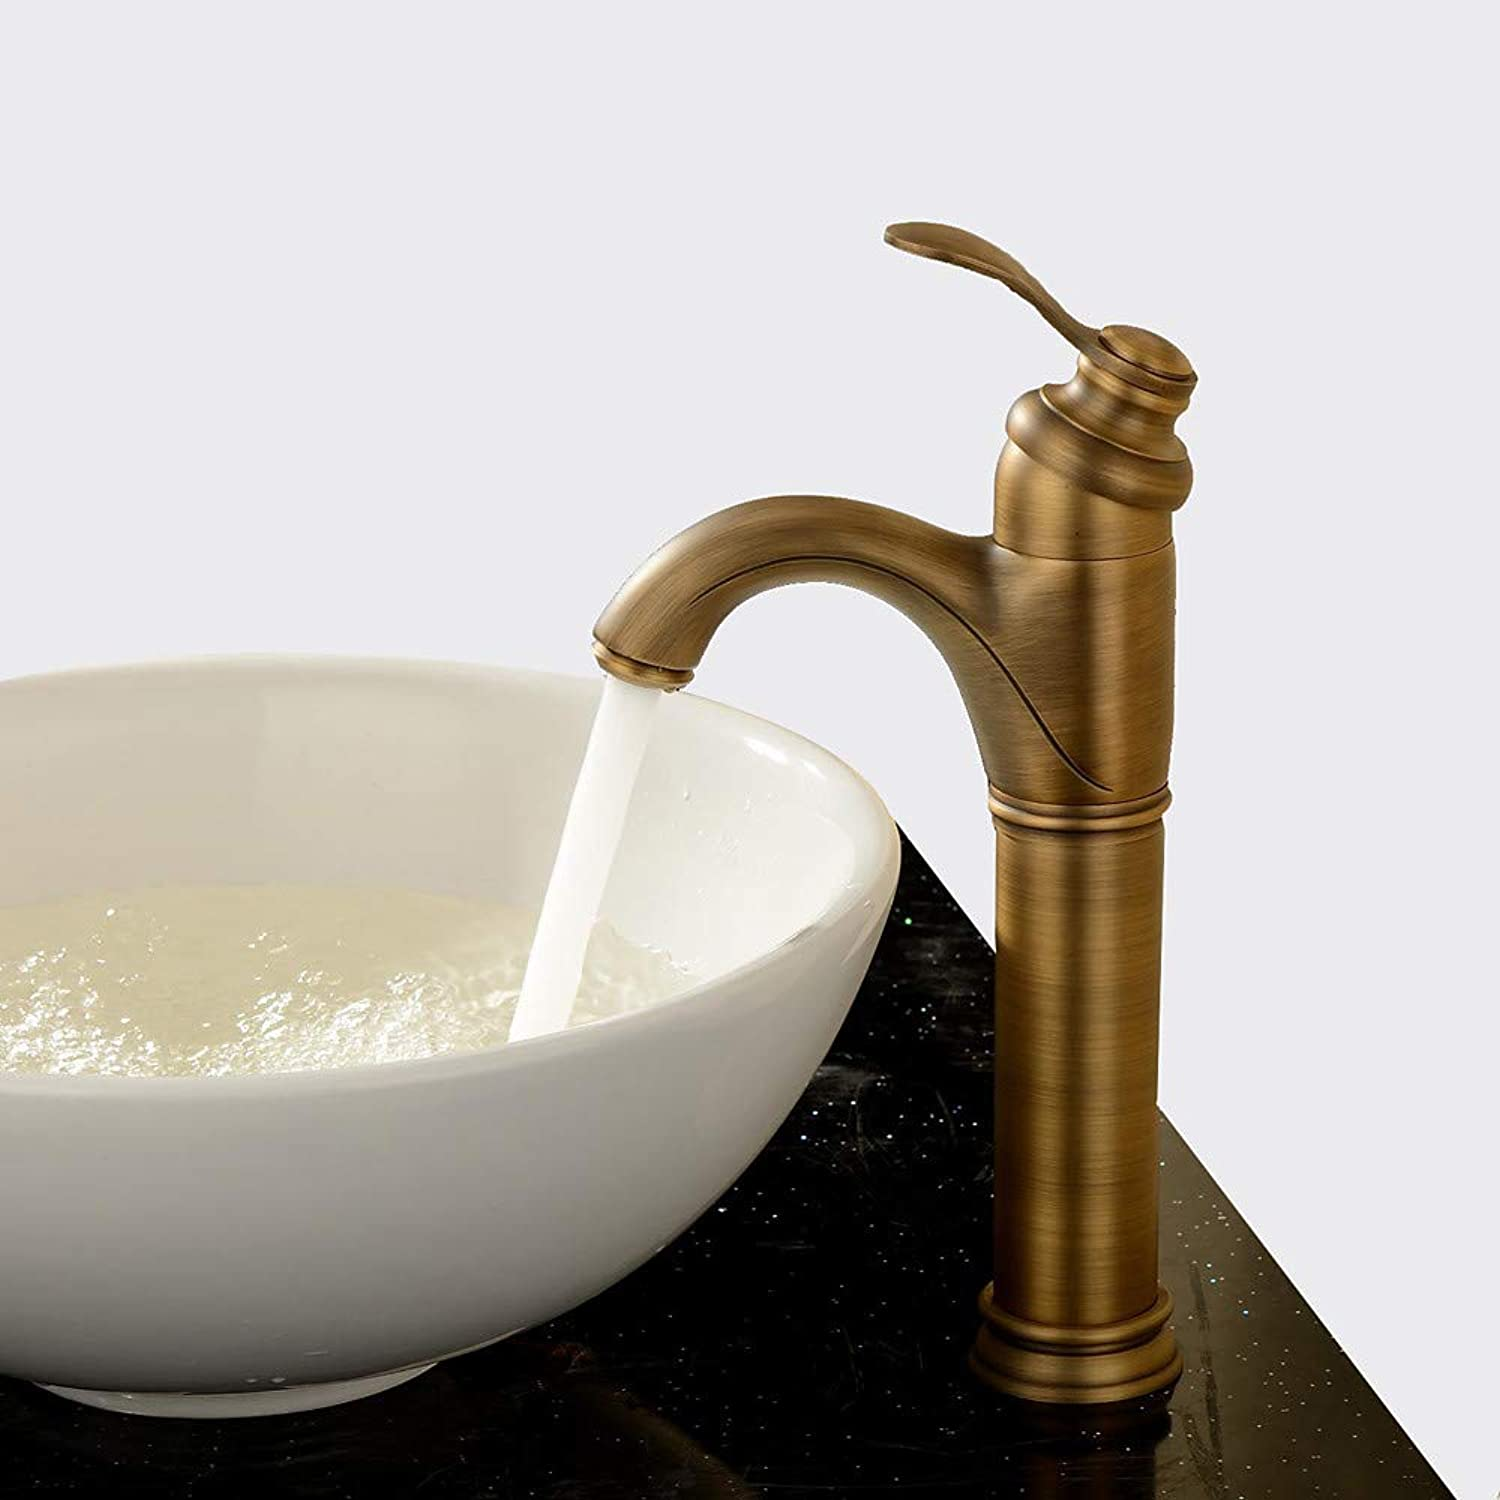 Tintin Bathroom Sink Faucet - redatable Antique Brass Centerset One Hole Single Handle One Hole